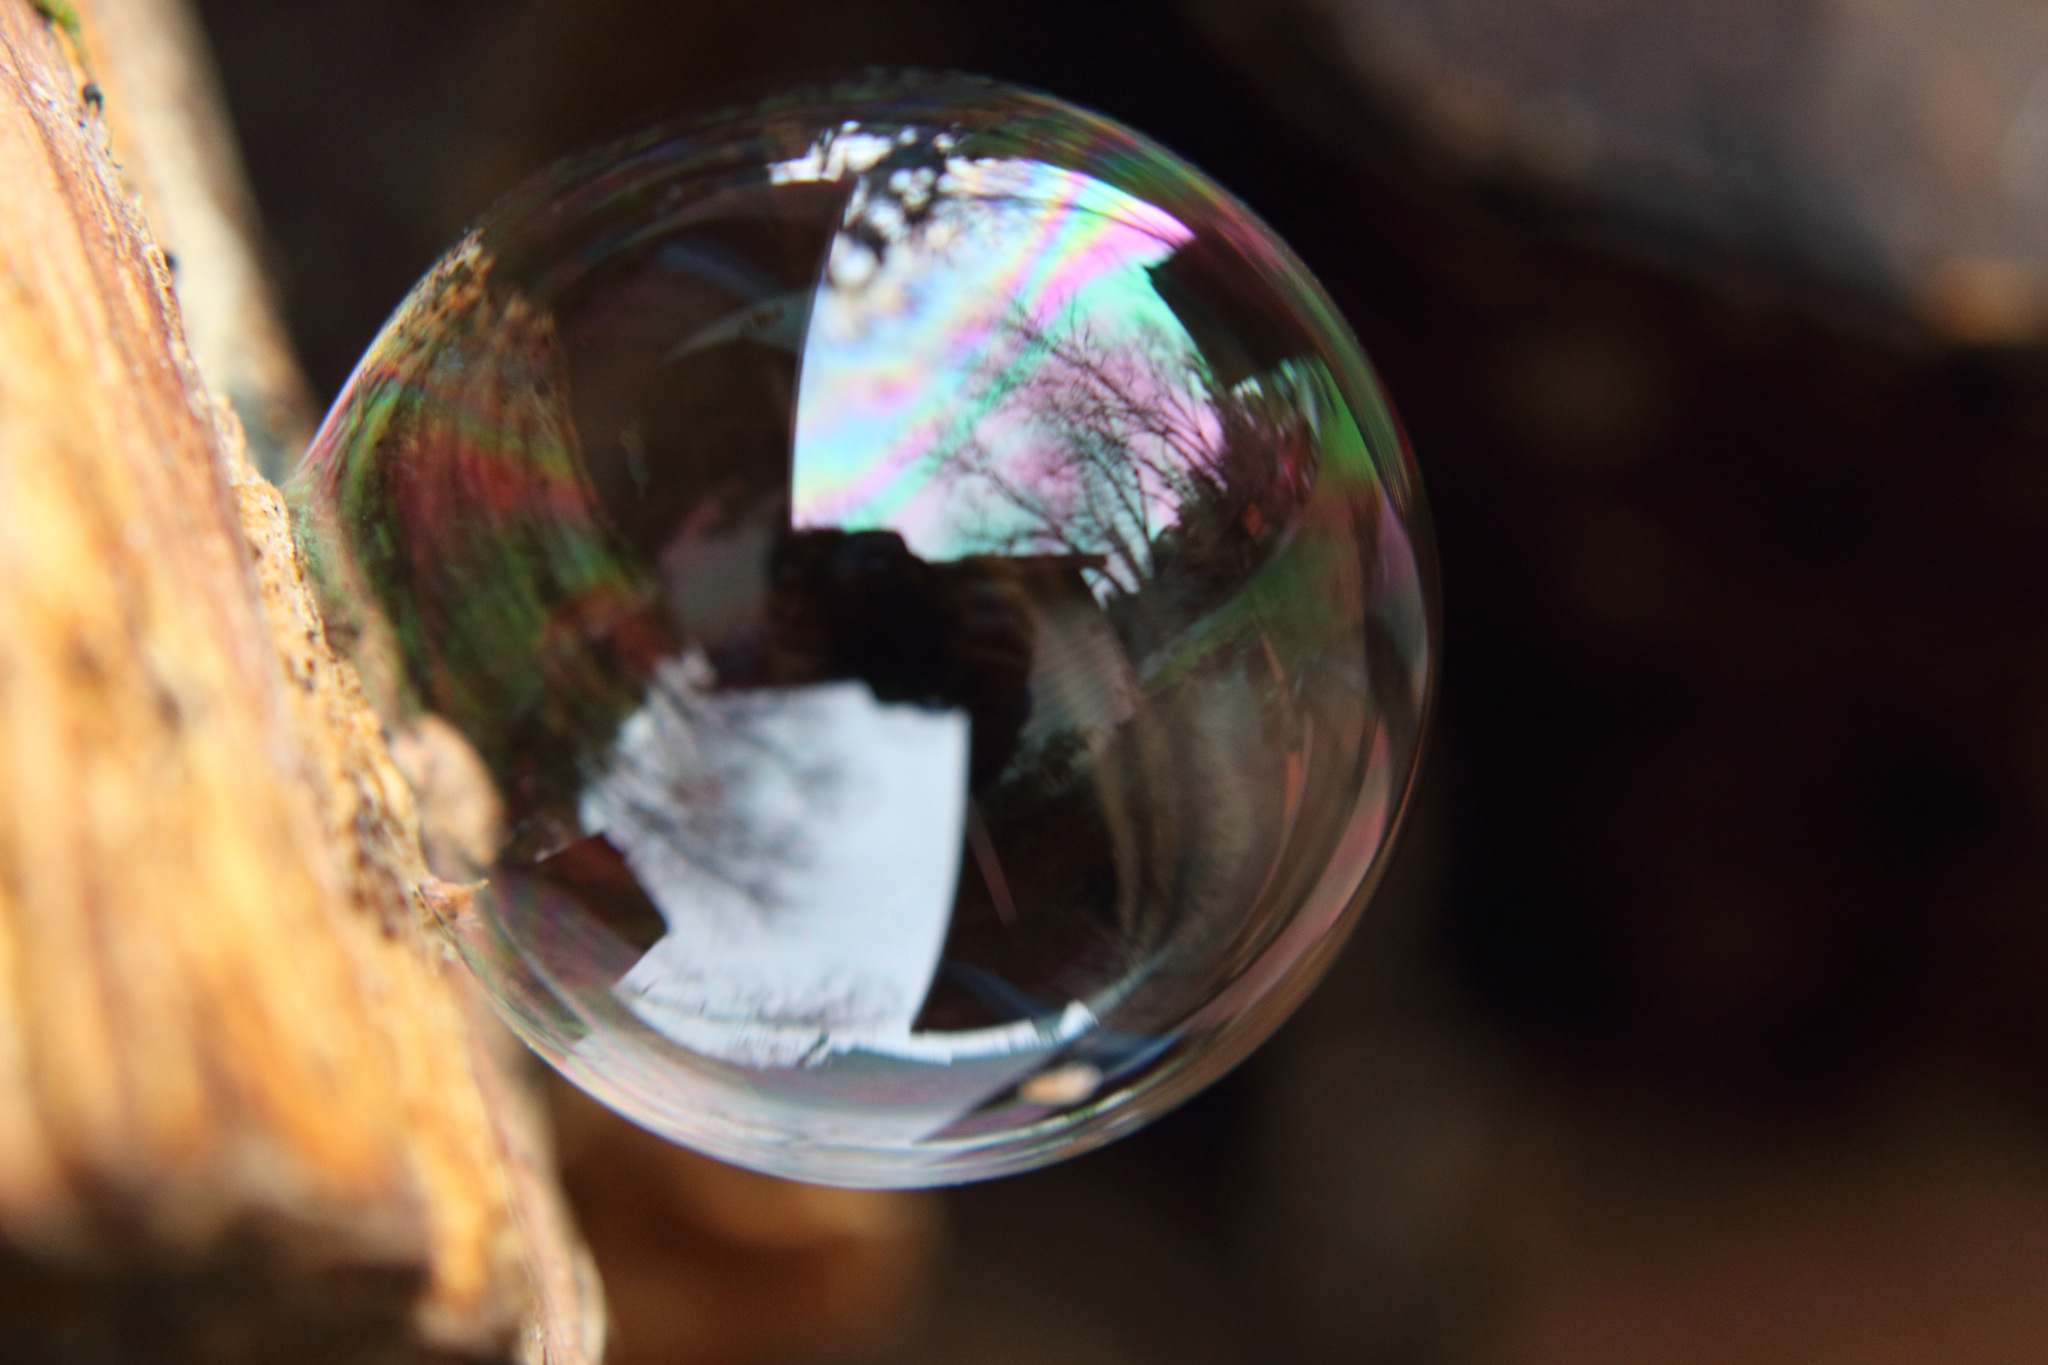 The Perfect Bubble by Laurie Puglia